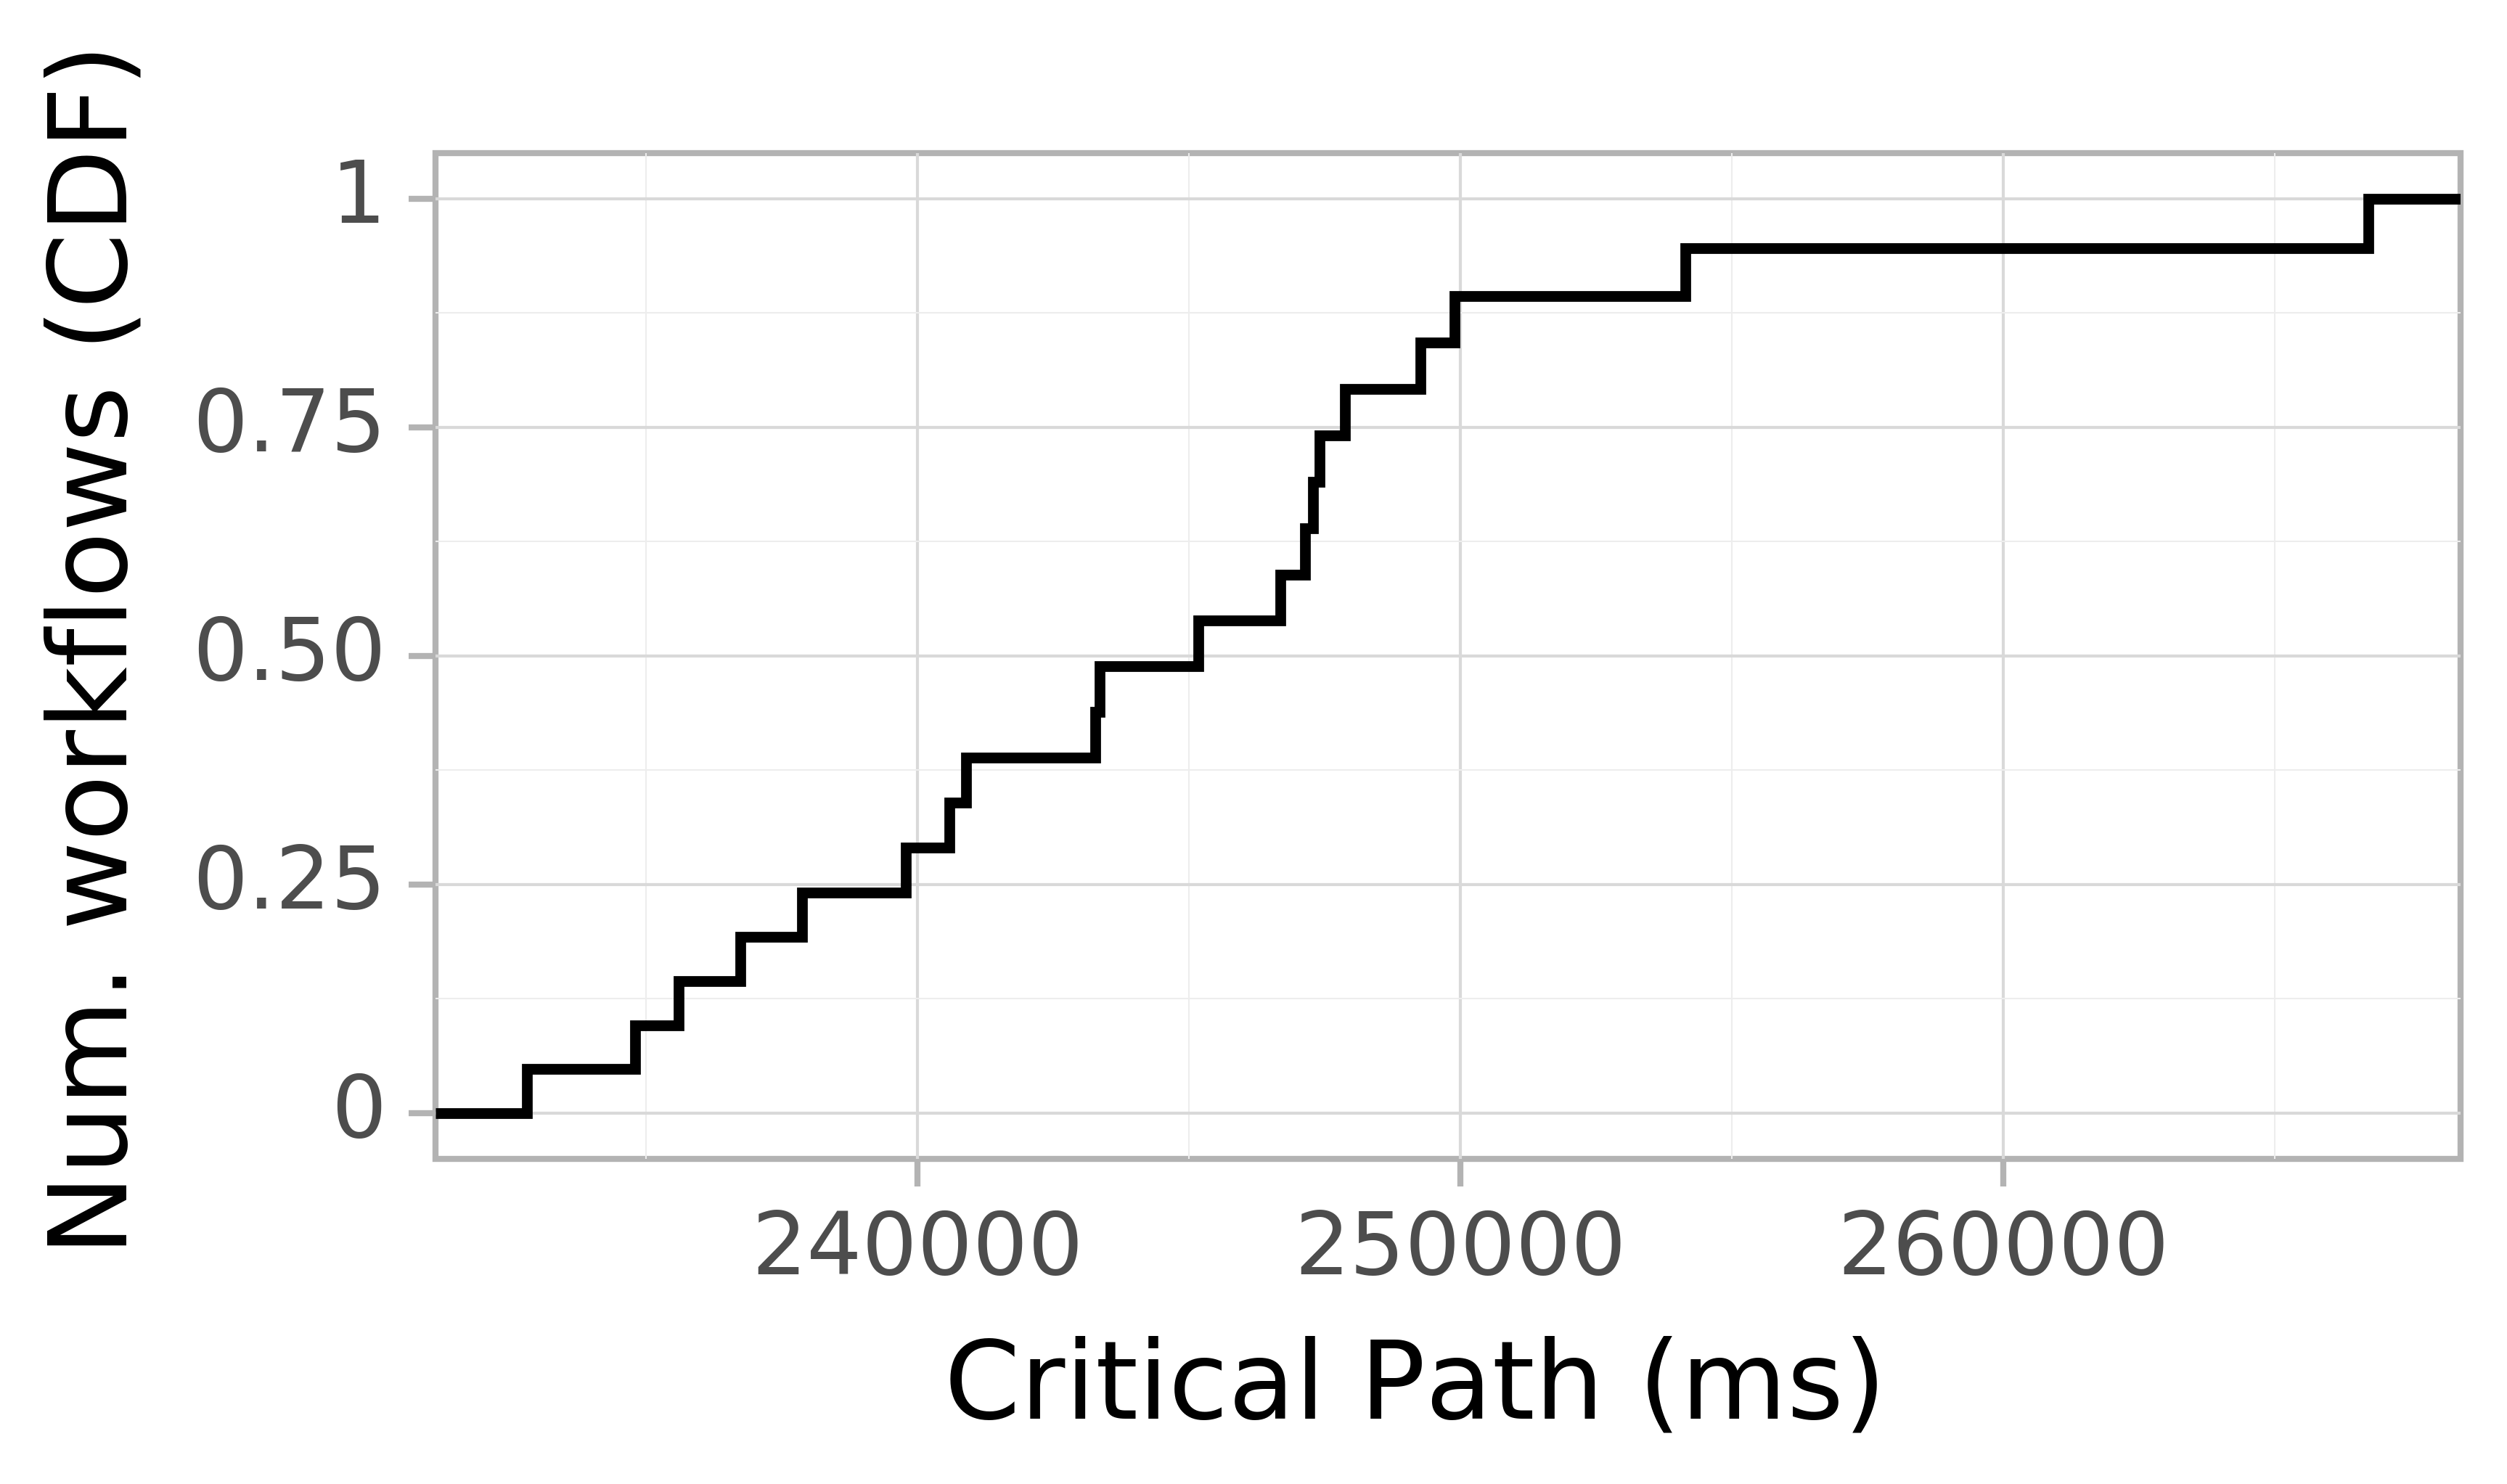 Job runtime CDF graph for the askalon-new_ee21 trace.